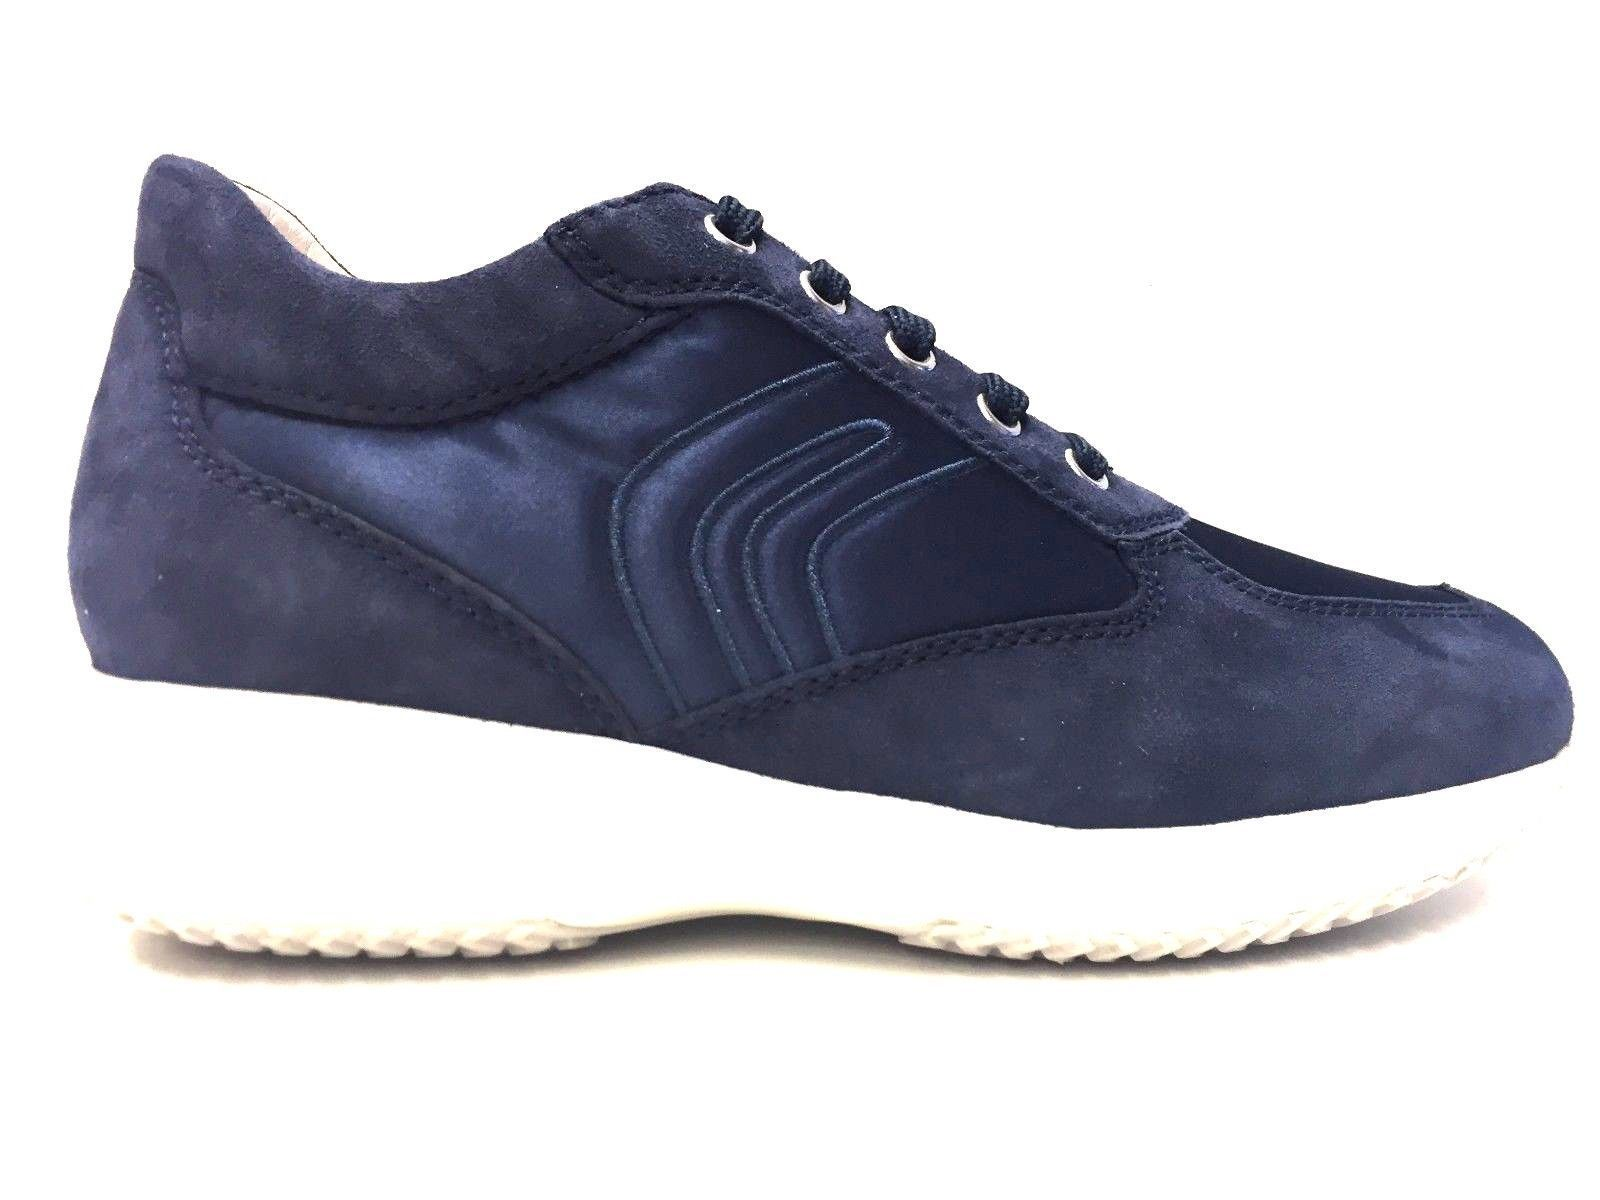 SCARPE CASUAL SNEAKERS DONNA GEOX ORIGINALE HAPPY D1162A SHOES PELLE PE NEW